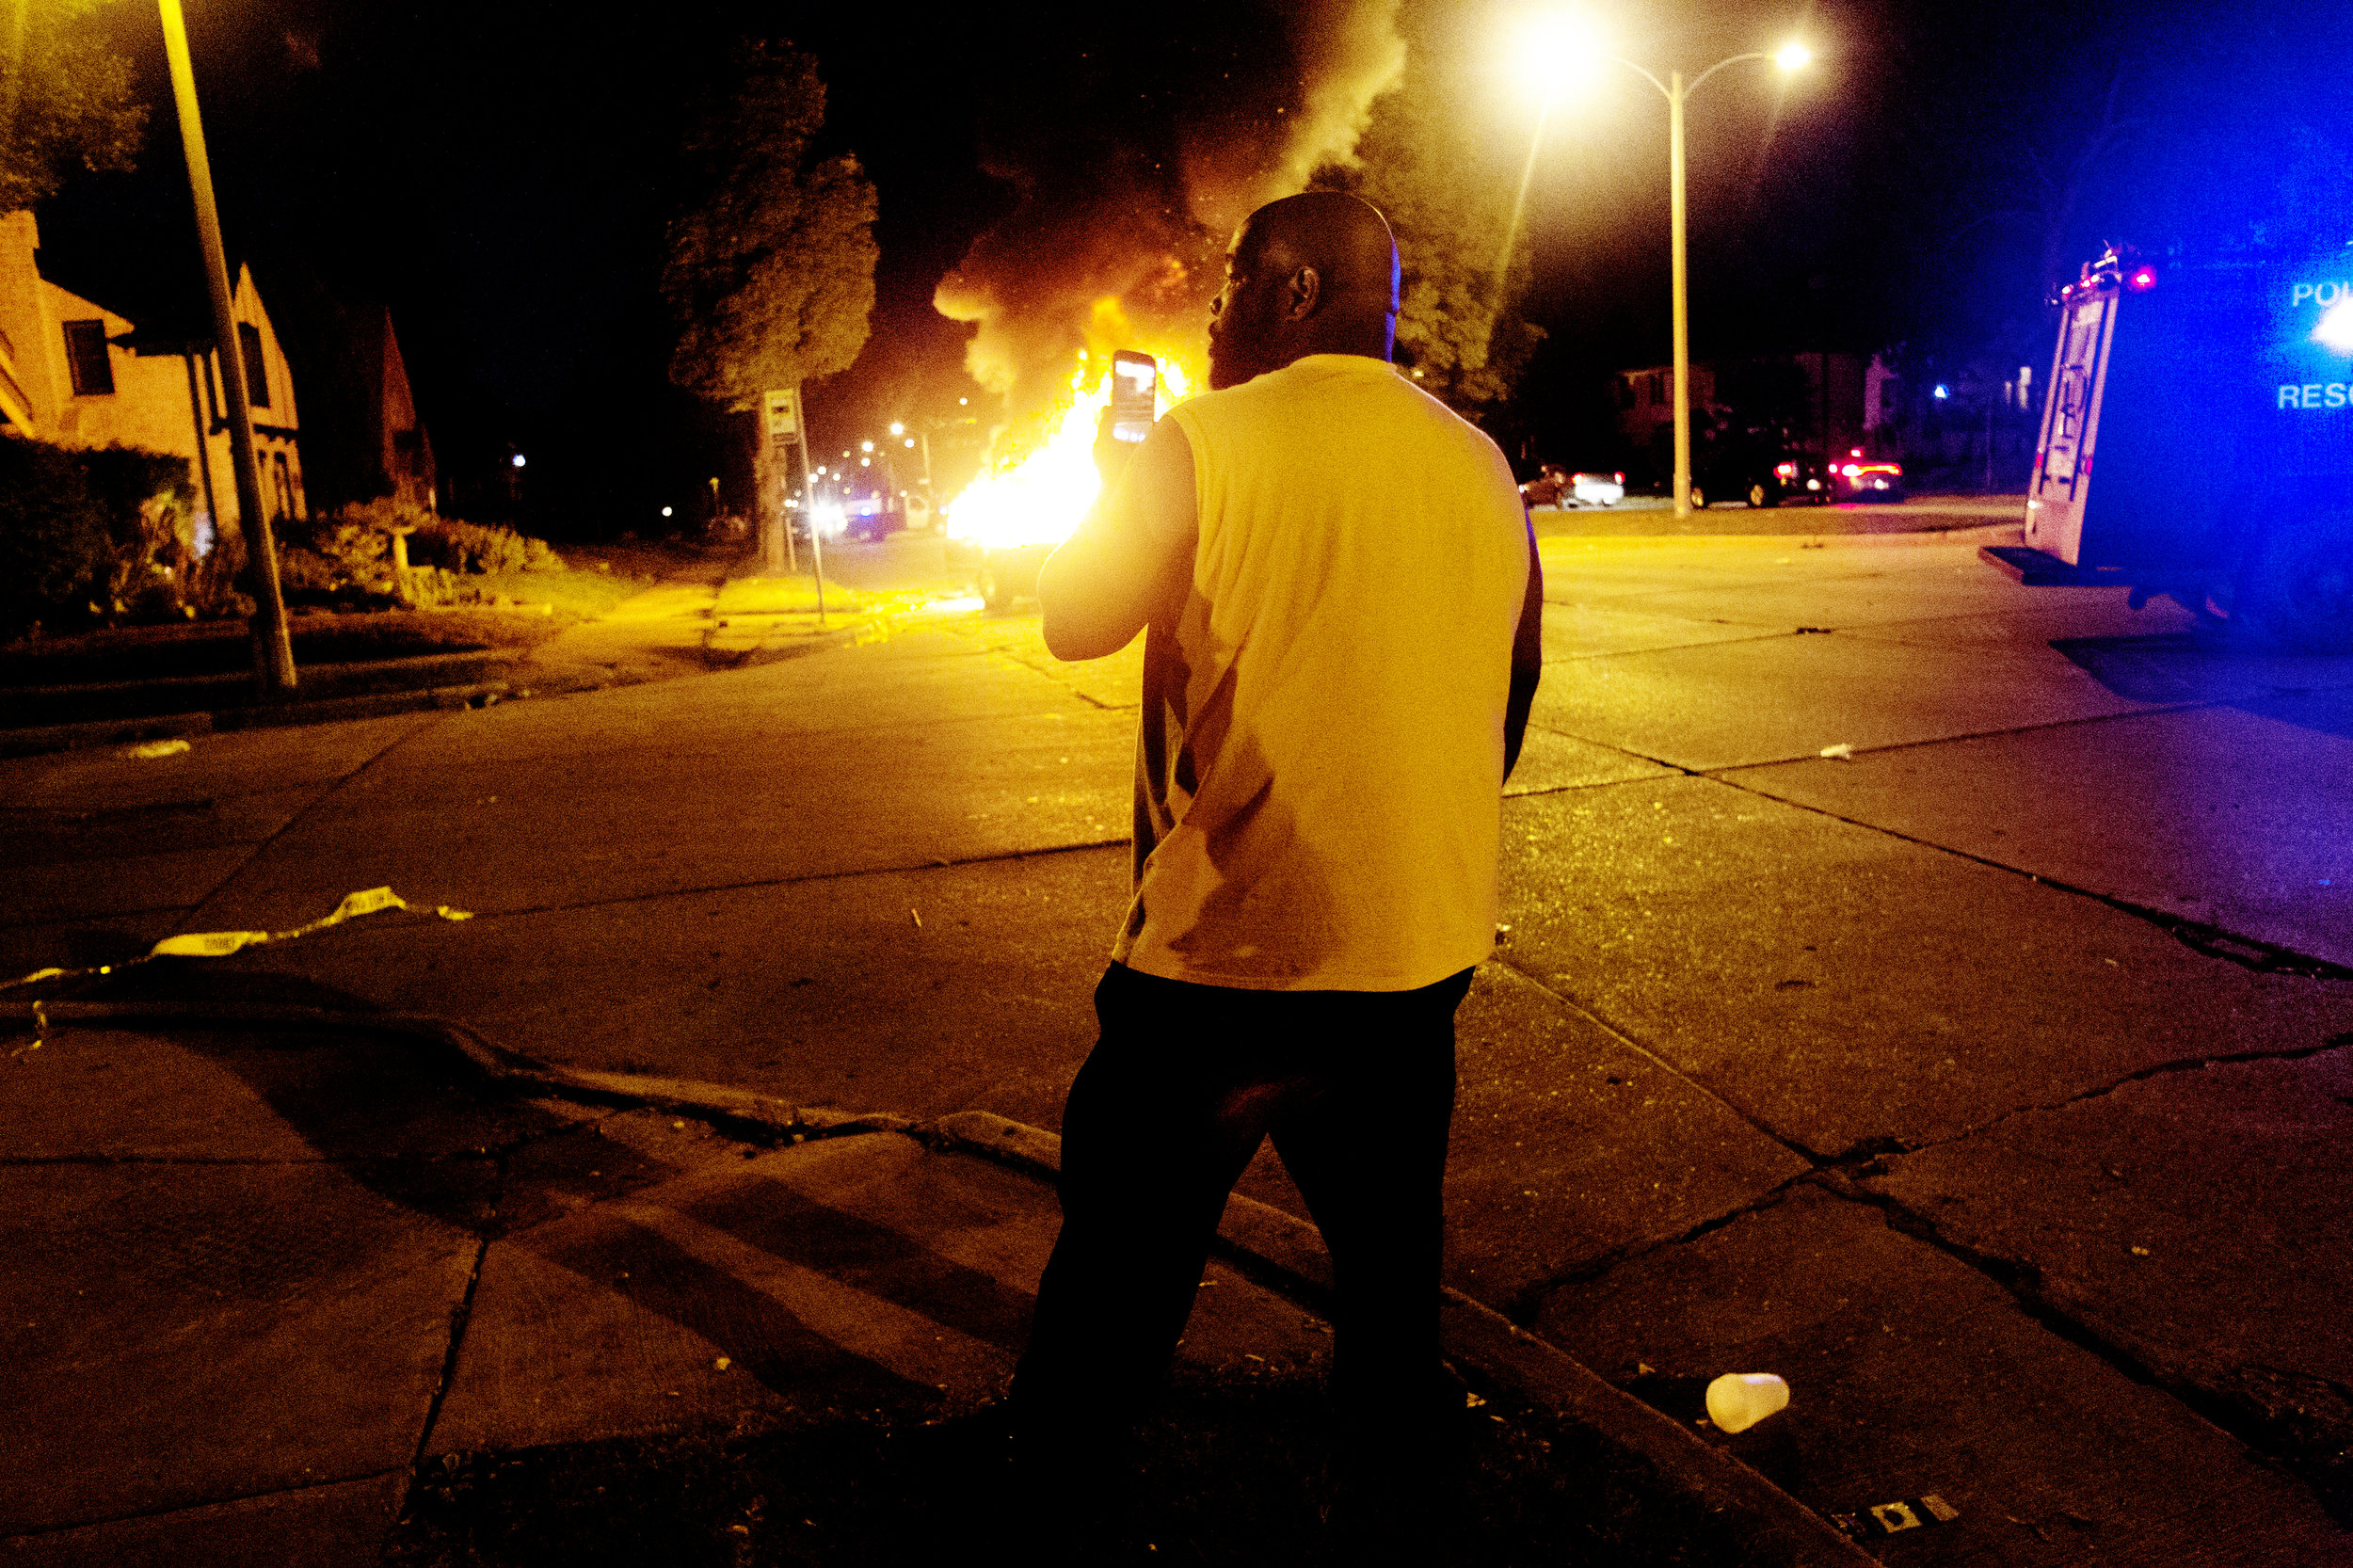 A bystander watches as an automobile burns at the scene of a riot on Sherman Boulevard and Auer Street in Milwaukee, Wisconsin on August 13, 2016. The riot was the result of heated confrontations between police and protestors after an unarmed man was shot and killed by a police officer earlier in the day.